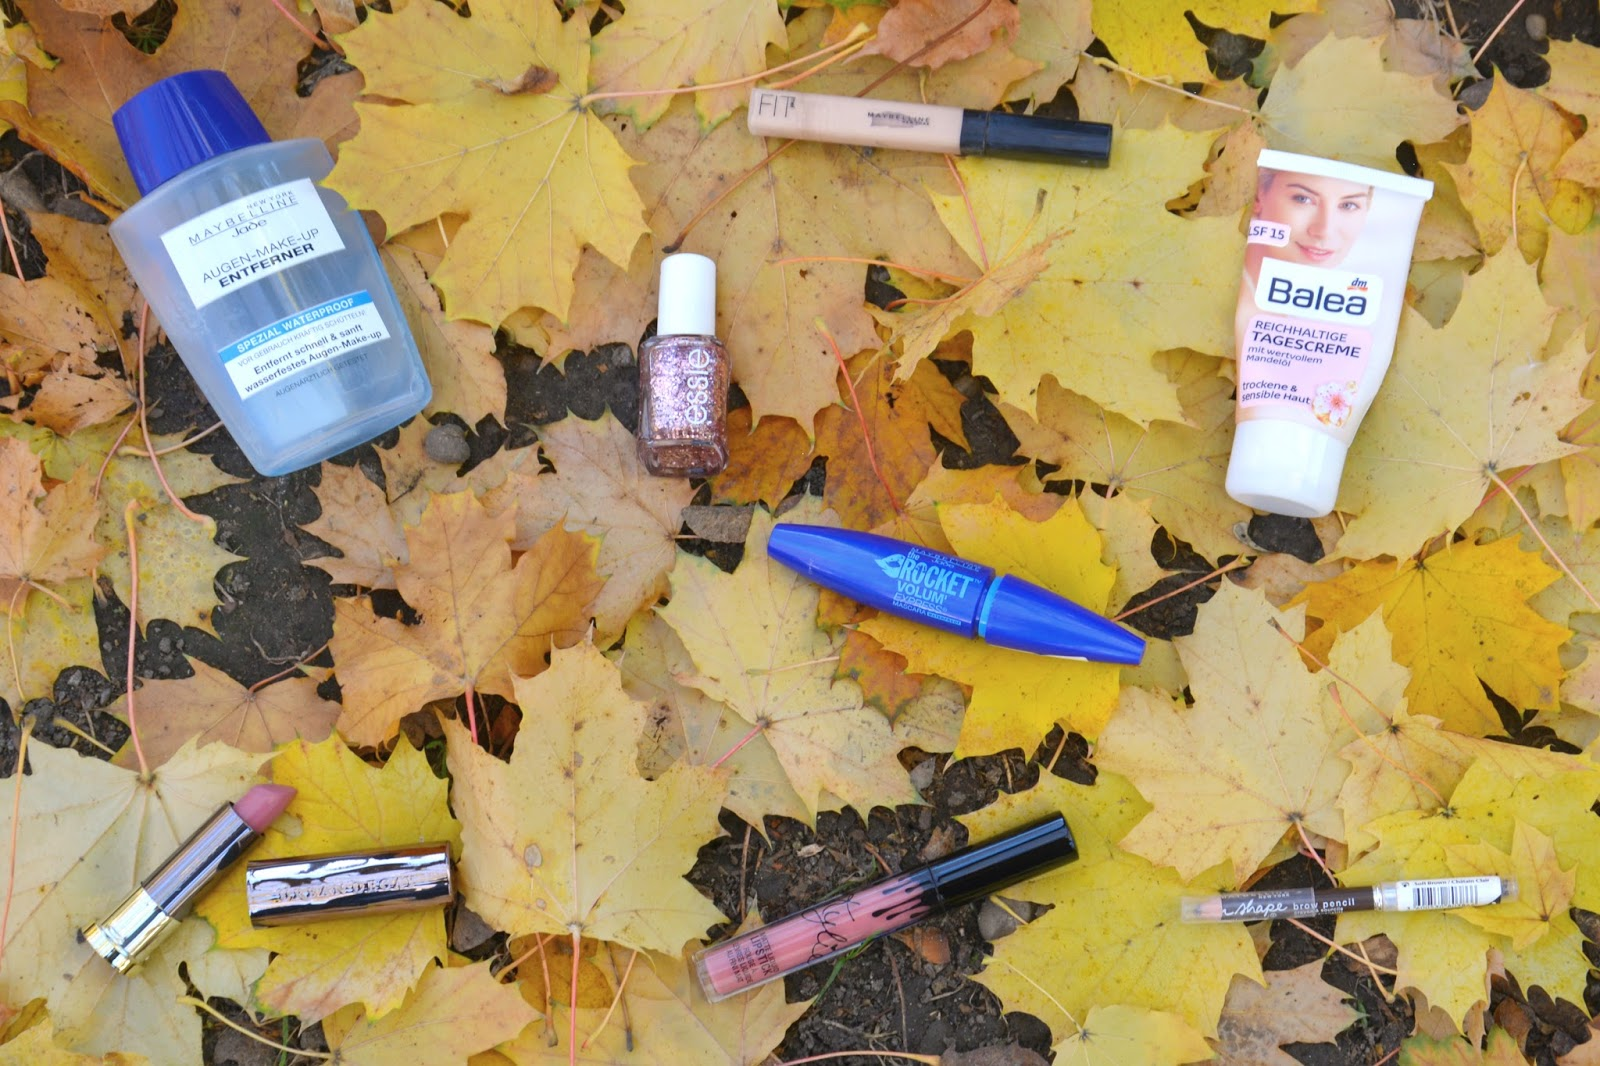 Maybelline Eye Makeup Remover, Balea Rich Day Creme, Maybelline Fit Me Concealer, Essie Nail Polish, Maybelline The Rocket Volum Express mascara, urban Decay Vice Lipstick, Kylie Liquid Lipstick on Autumnal leaves